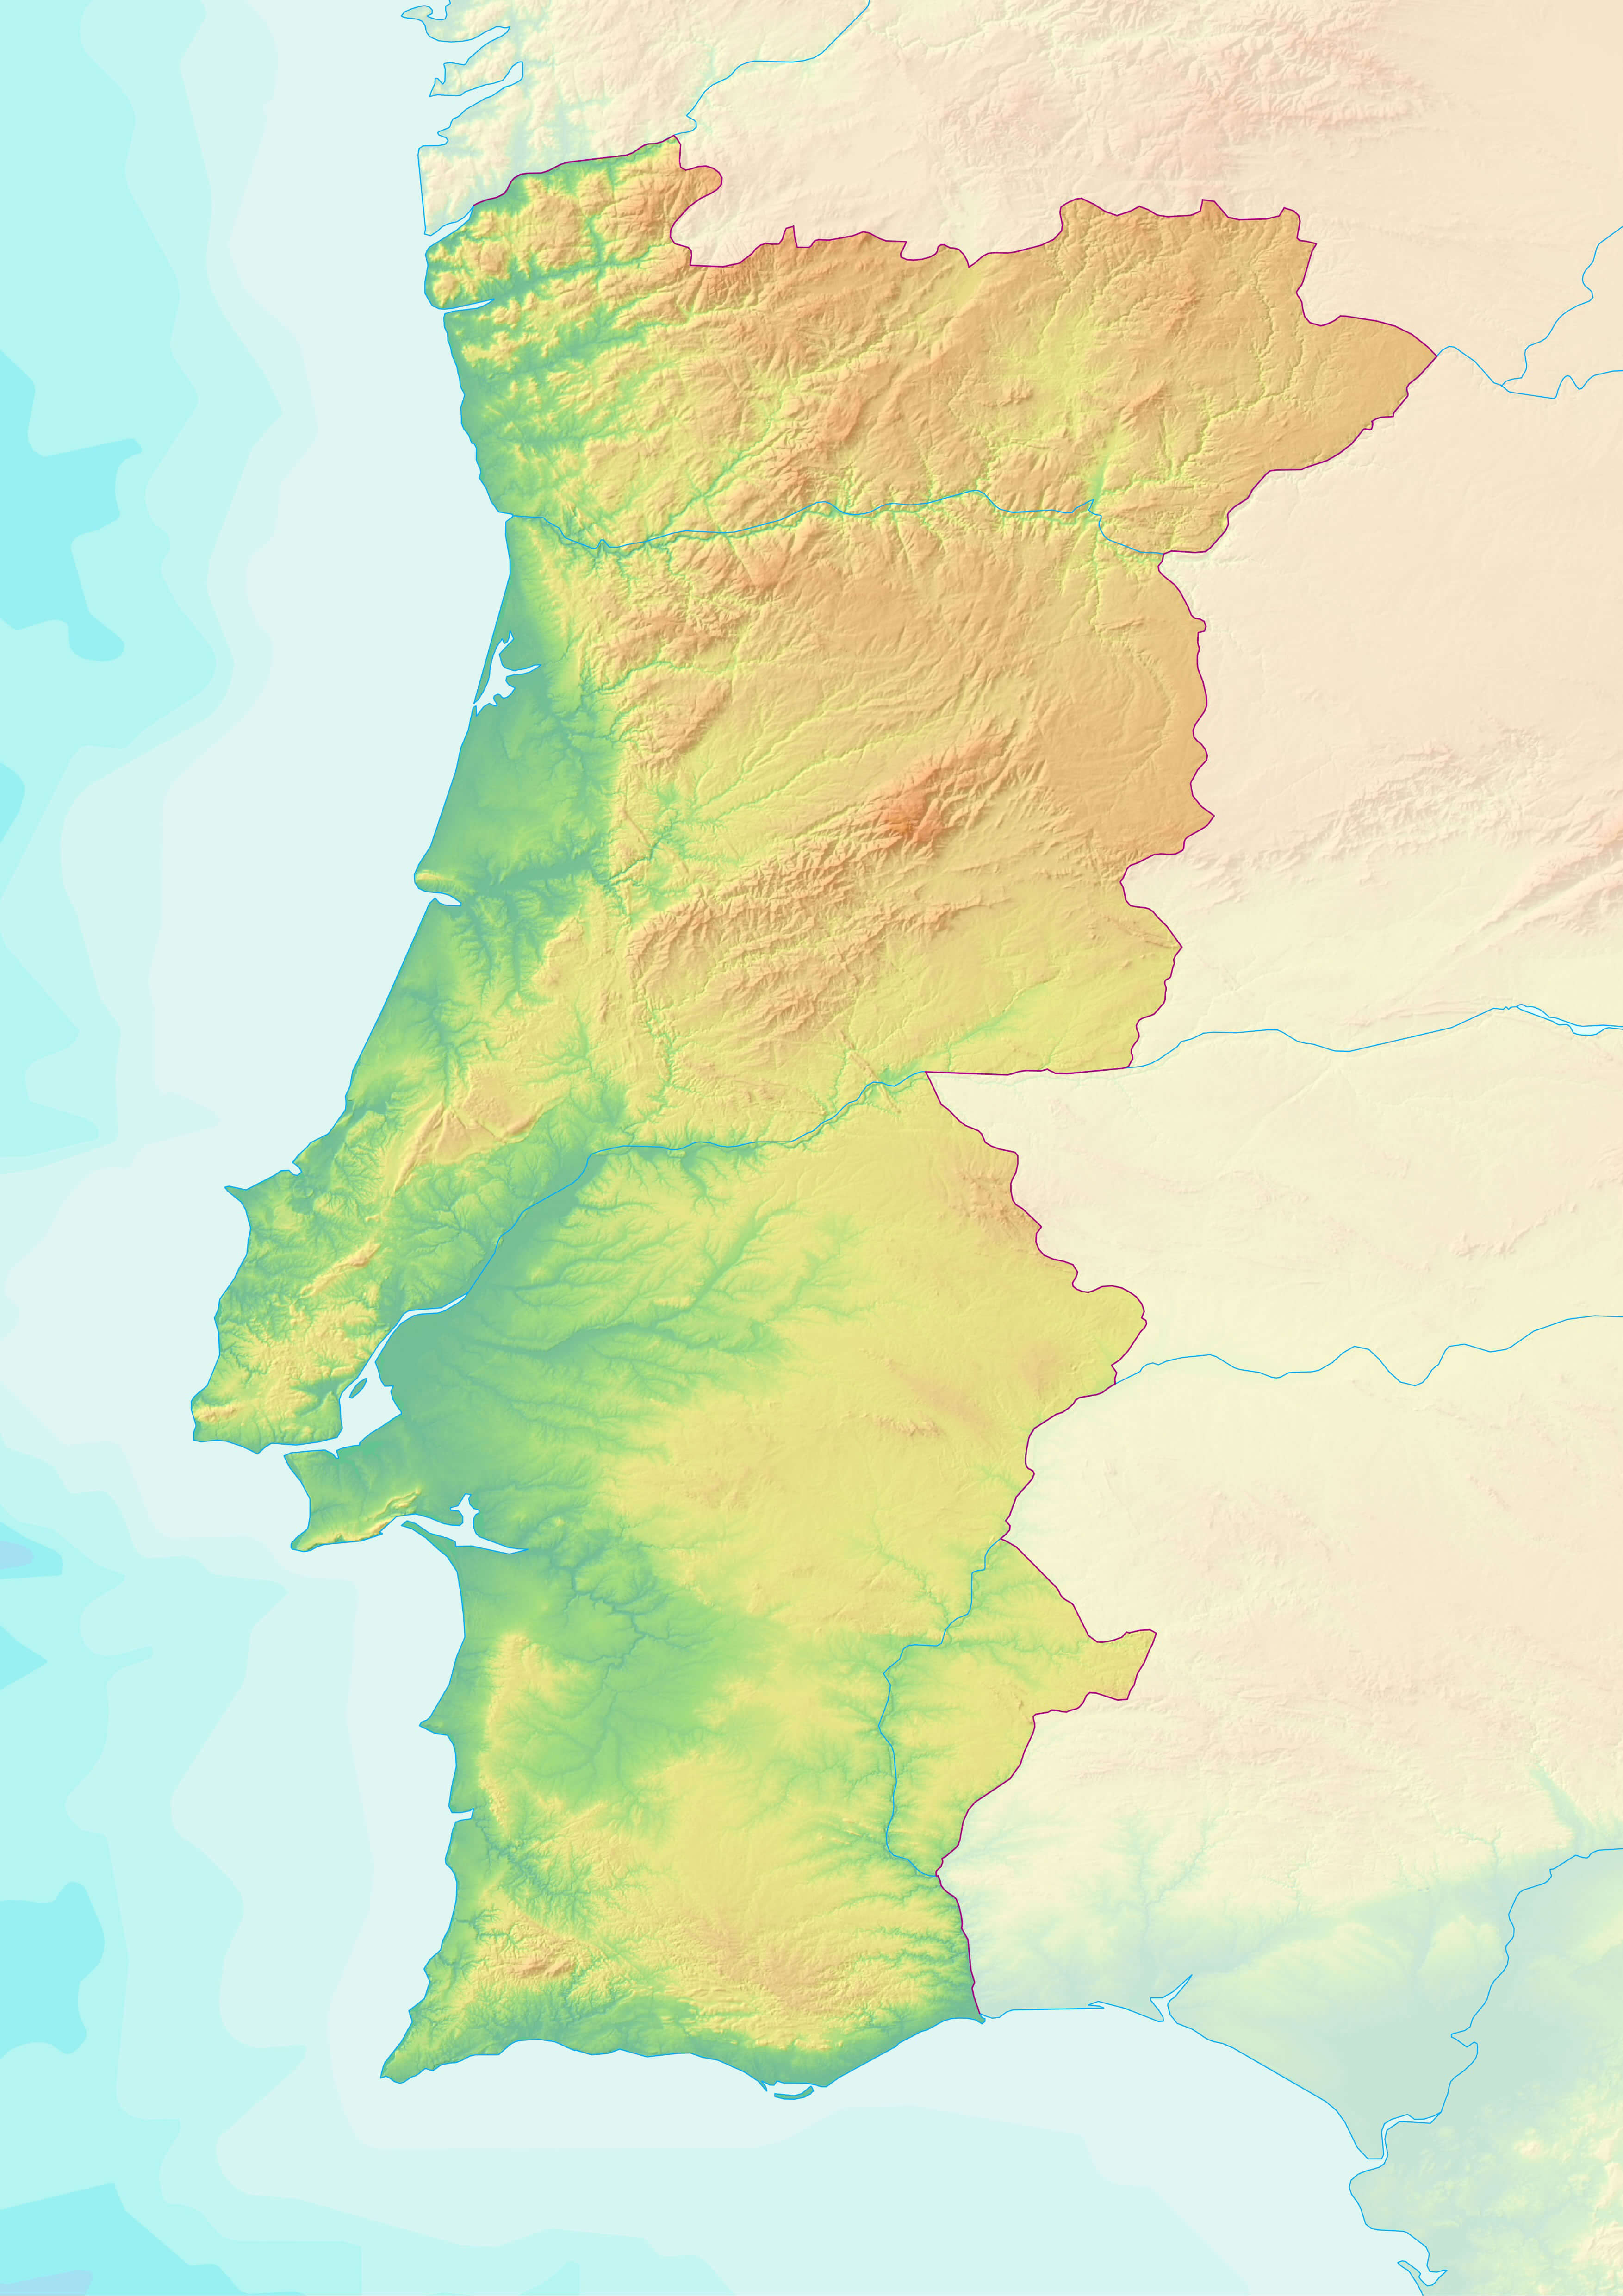 Topographic Map of Portugal